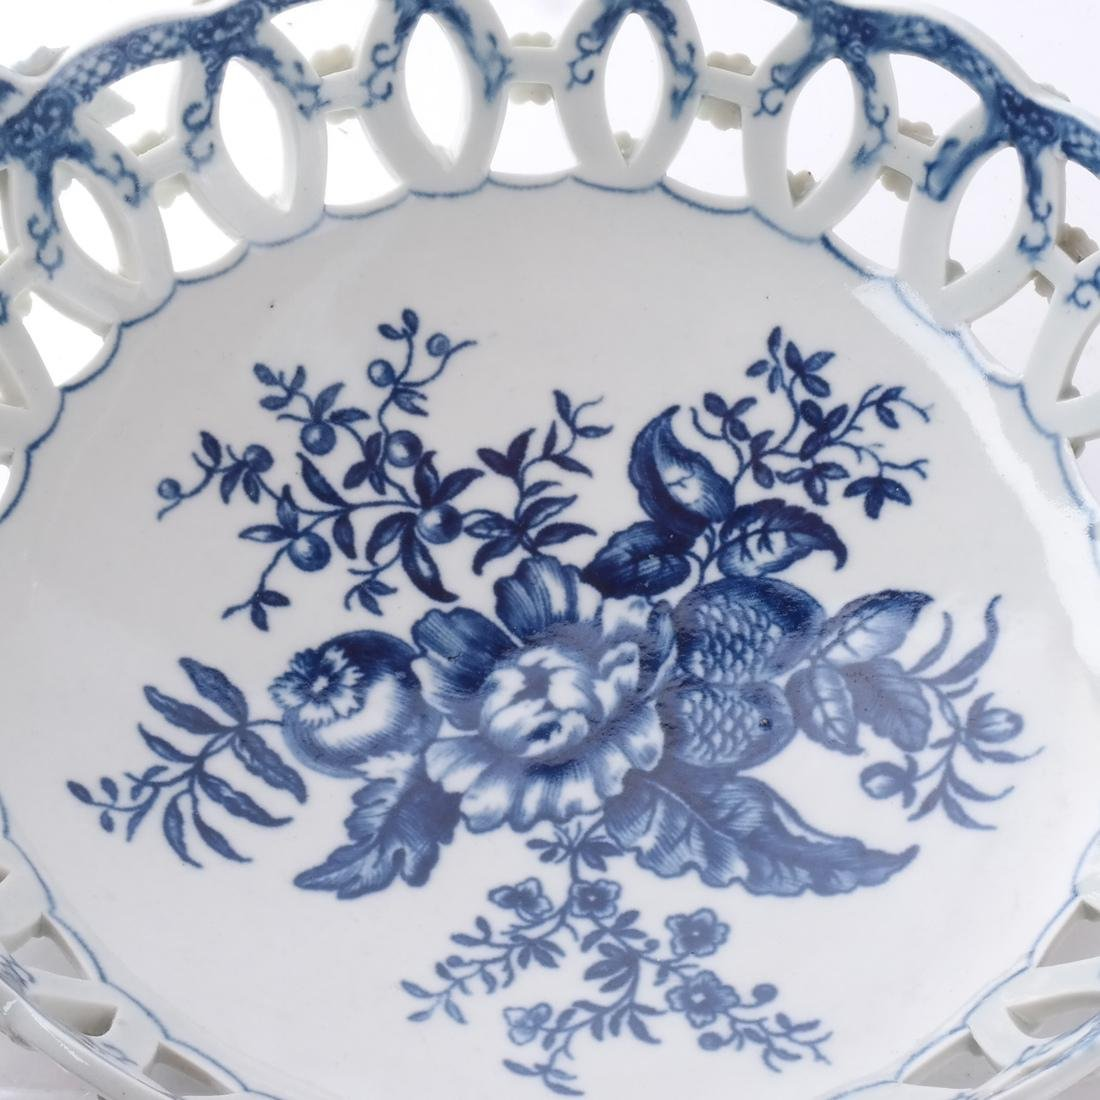 18th C. English Porcelain Basket - 2